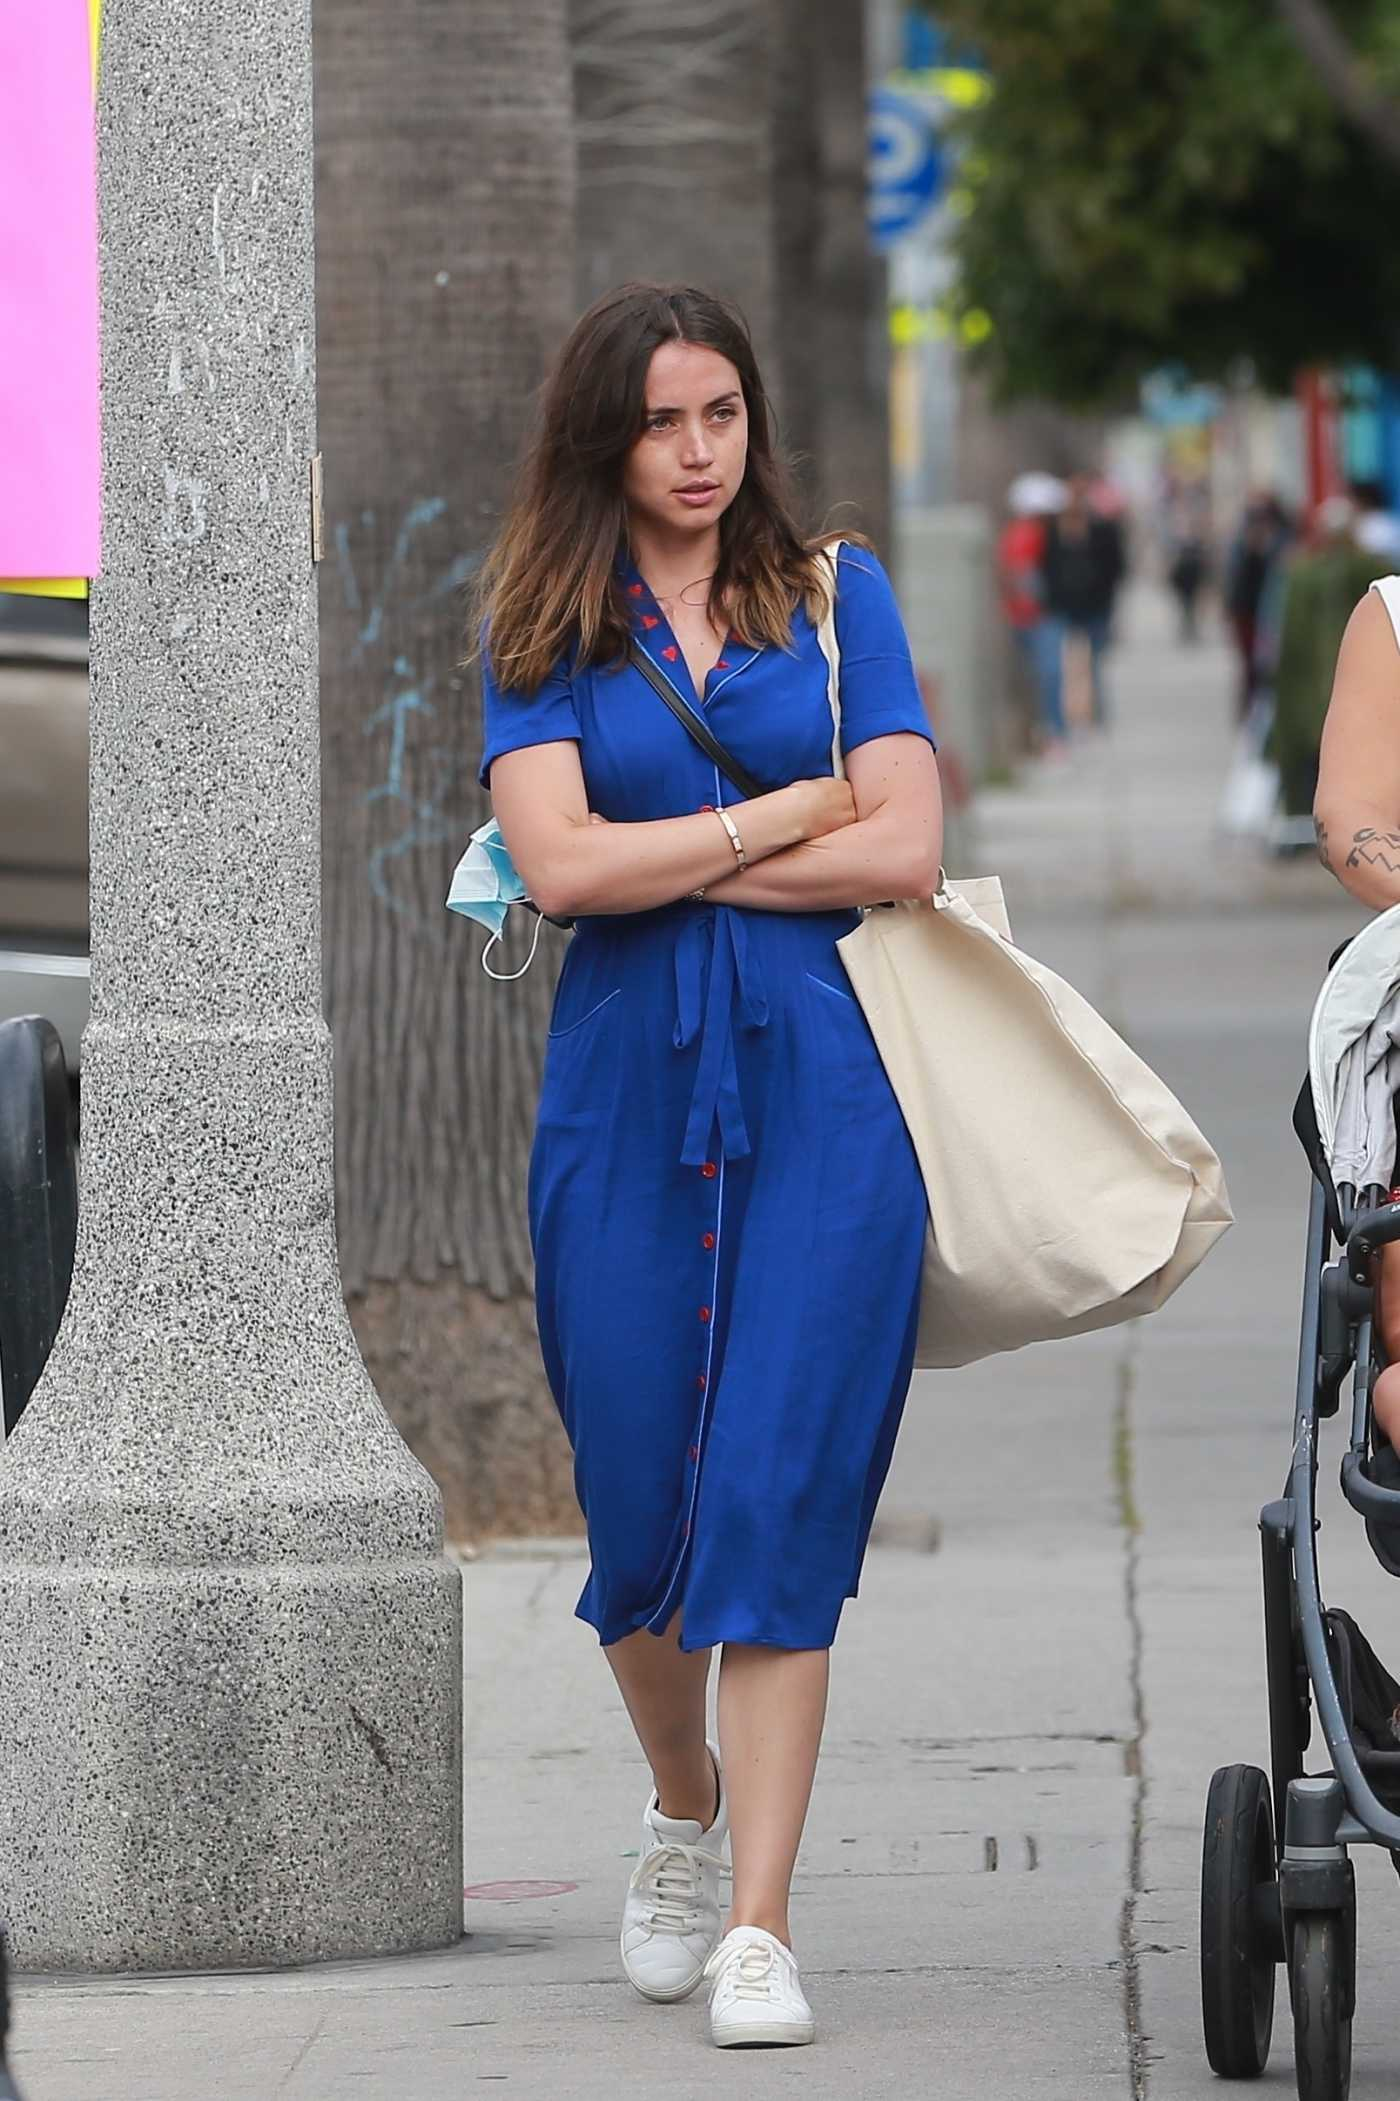 Ana de Armas in a Blue Dress Goes Shopping with a Friend at a Local Aviator Nation Store in Venice Beach 05/26/2020